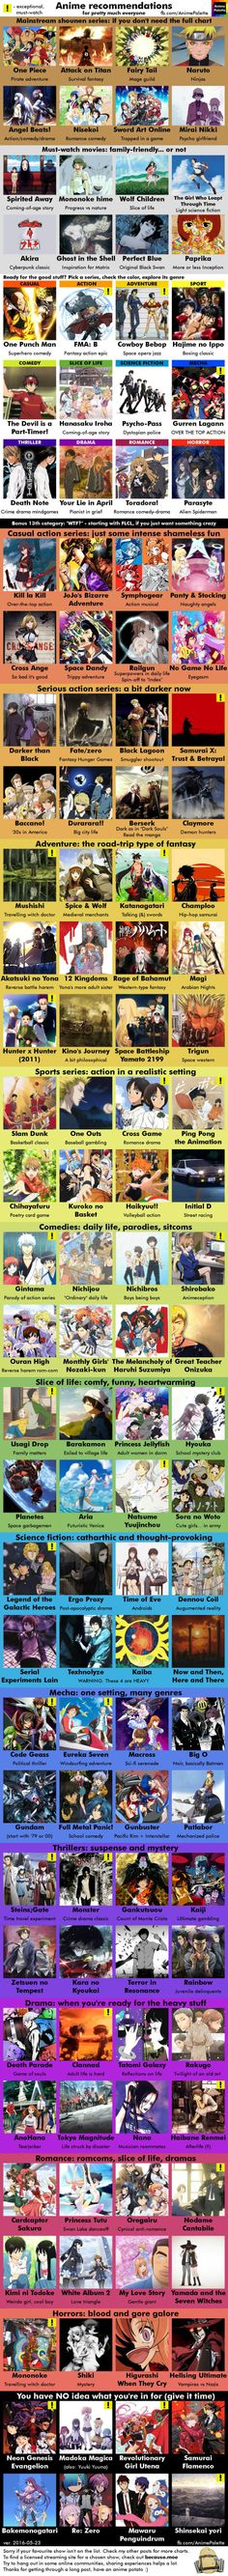 Anime Recommendations